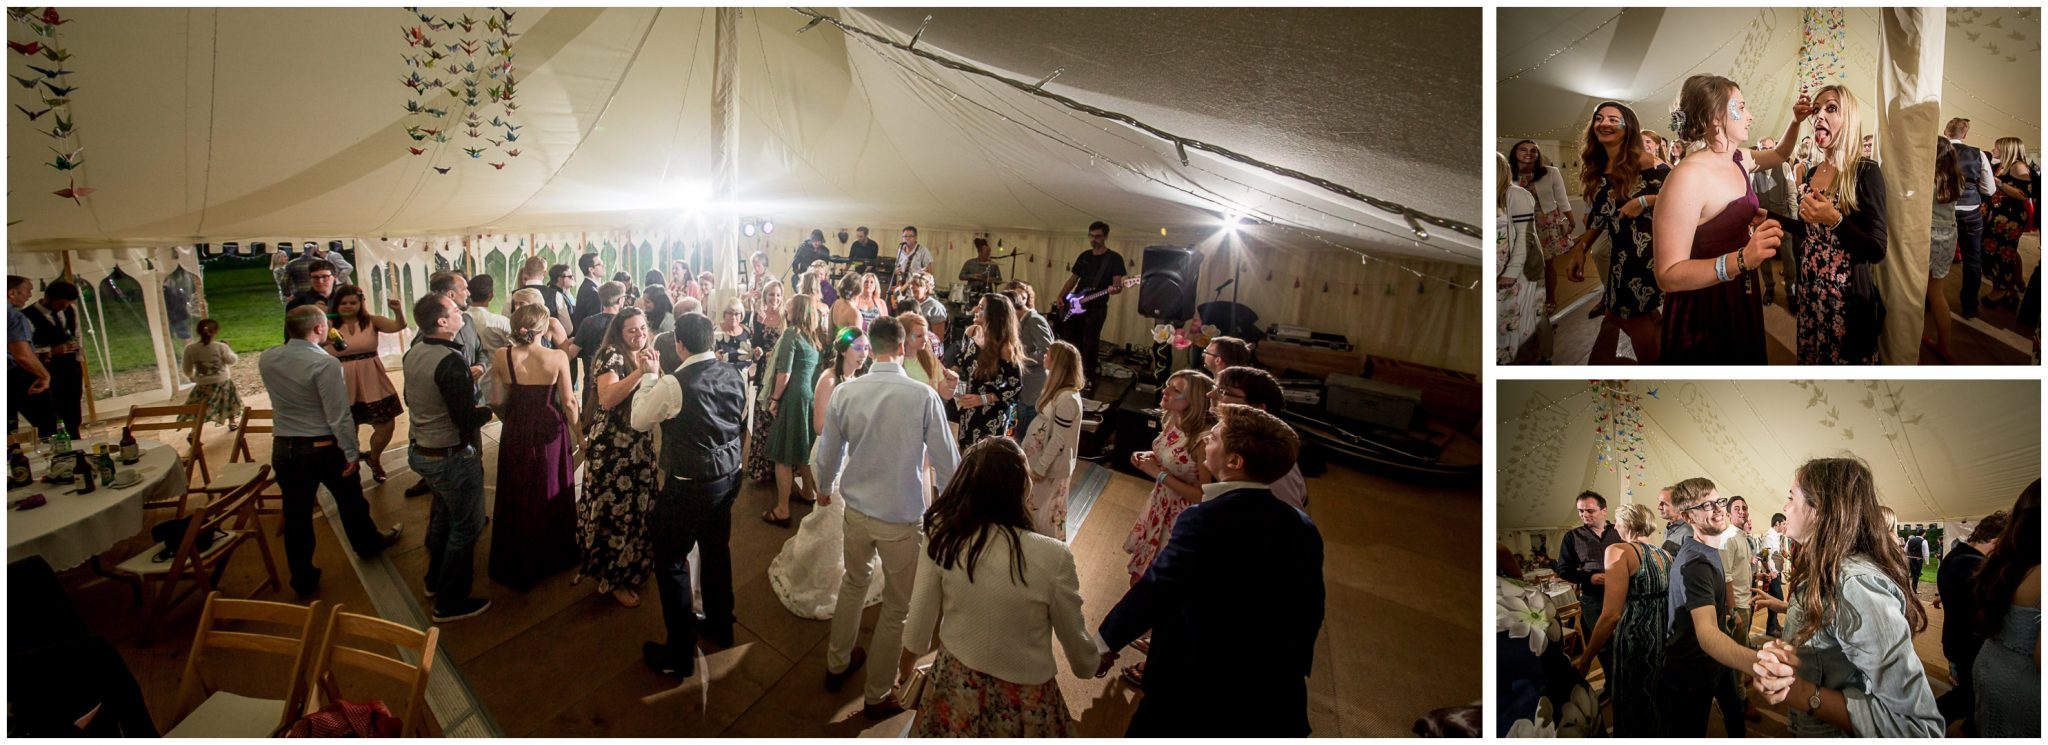 Timsbury Manor Festival Wedding dancing to band in marquee